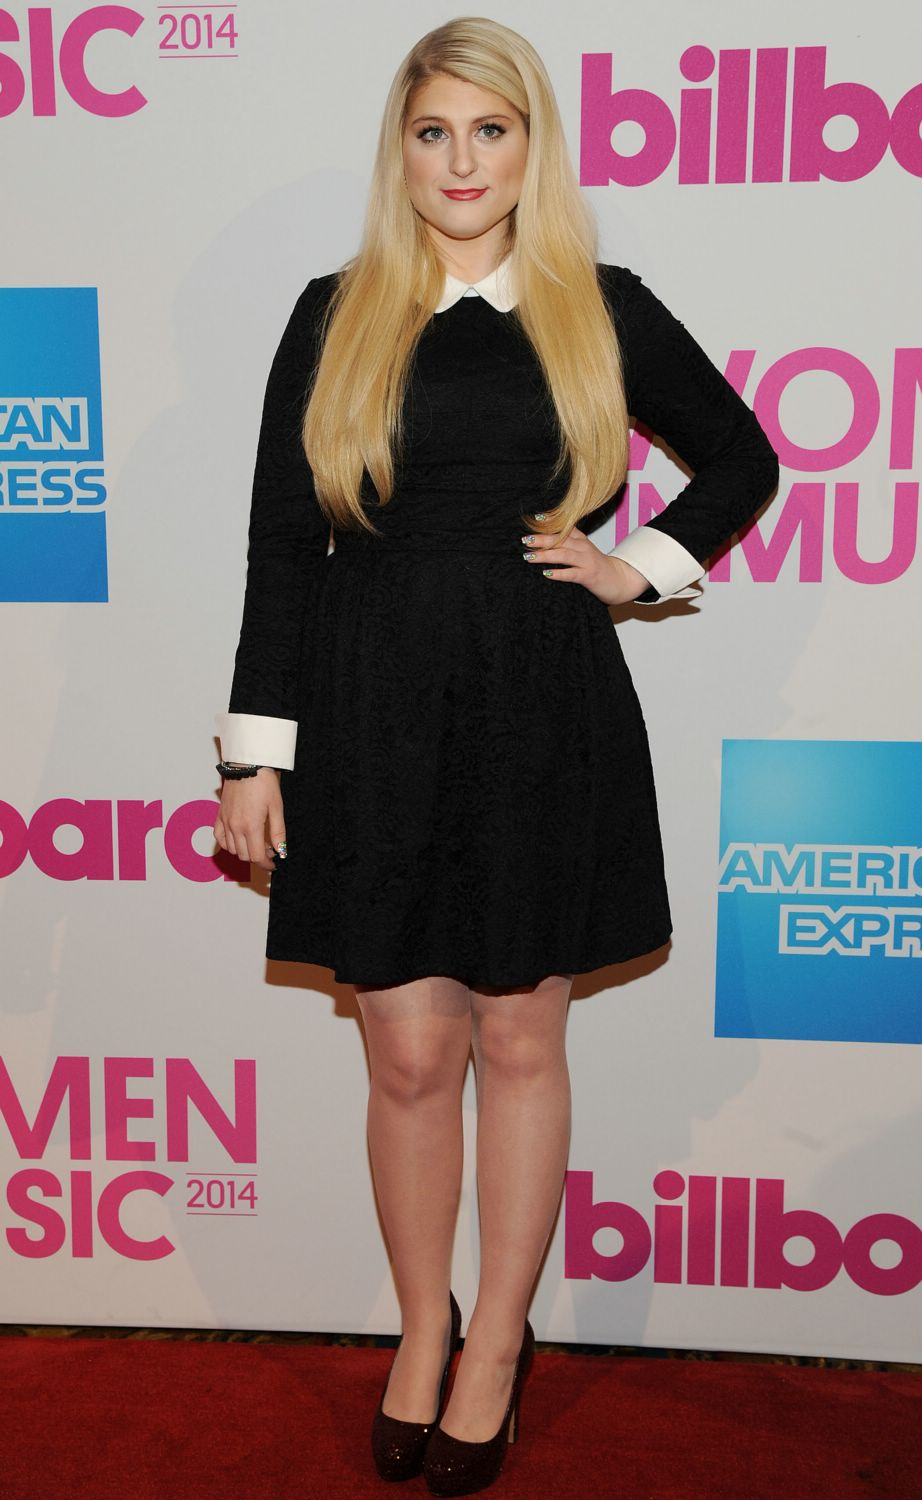 Meghan-trainor-billboard-women-in-music-luncheon.jpg